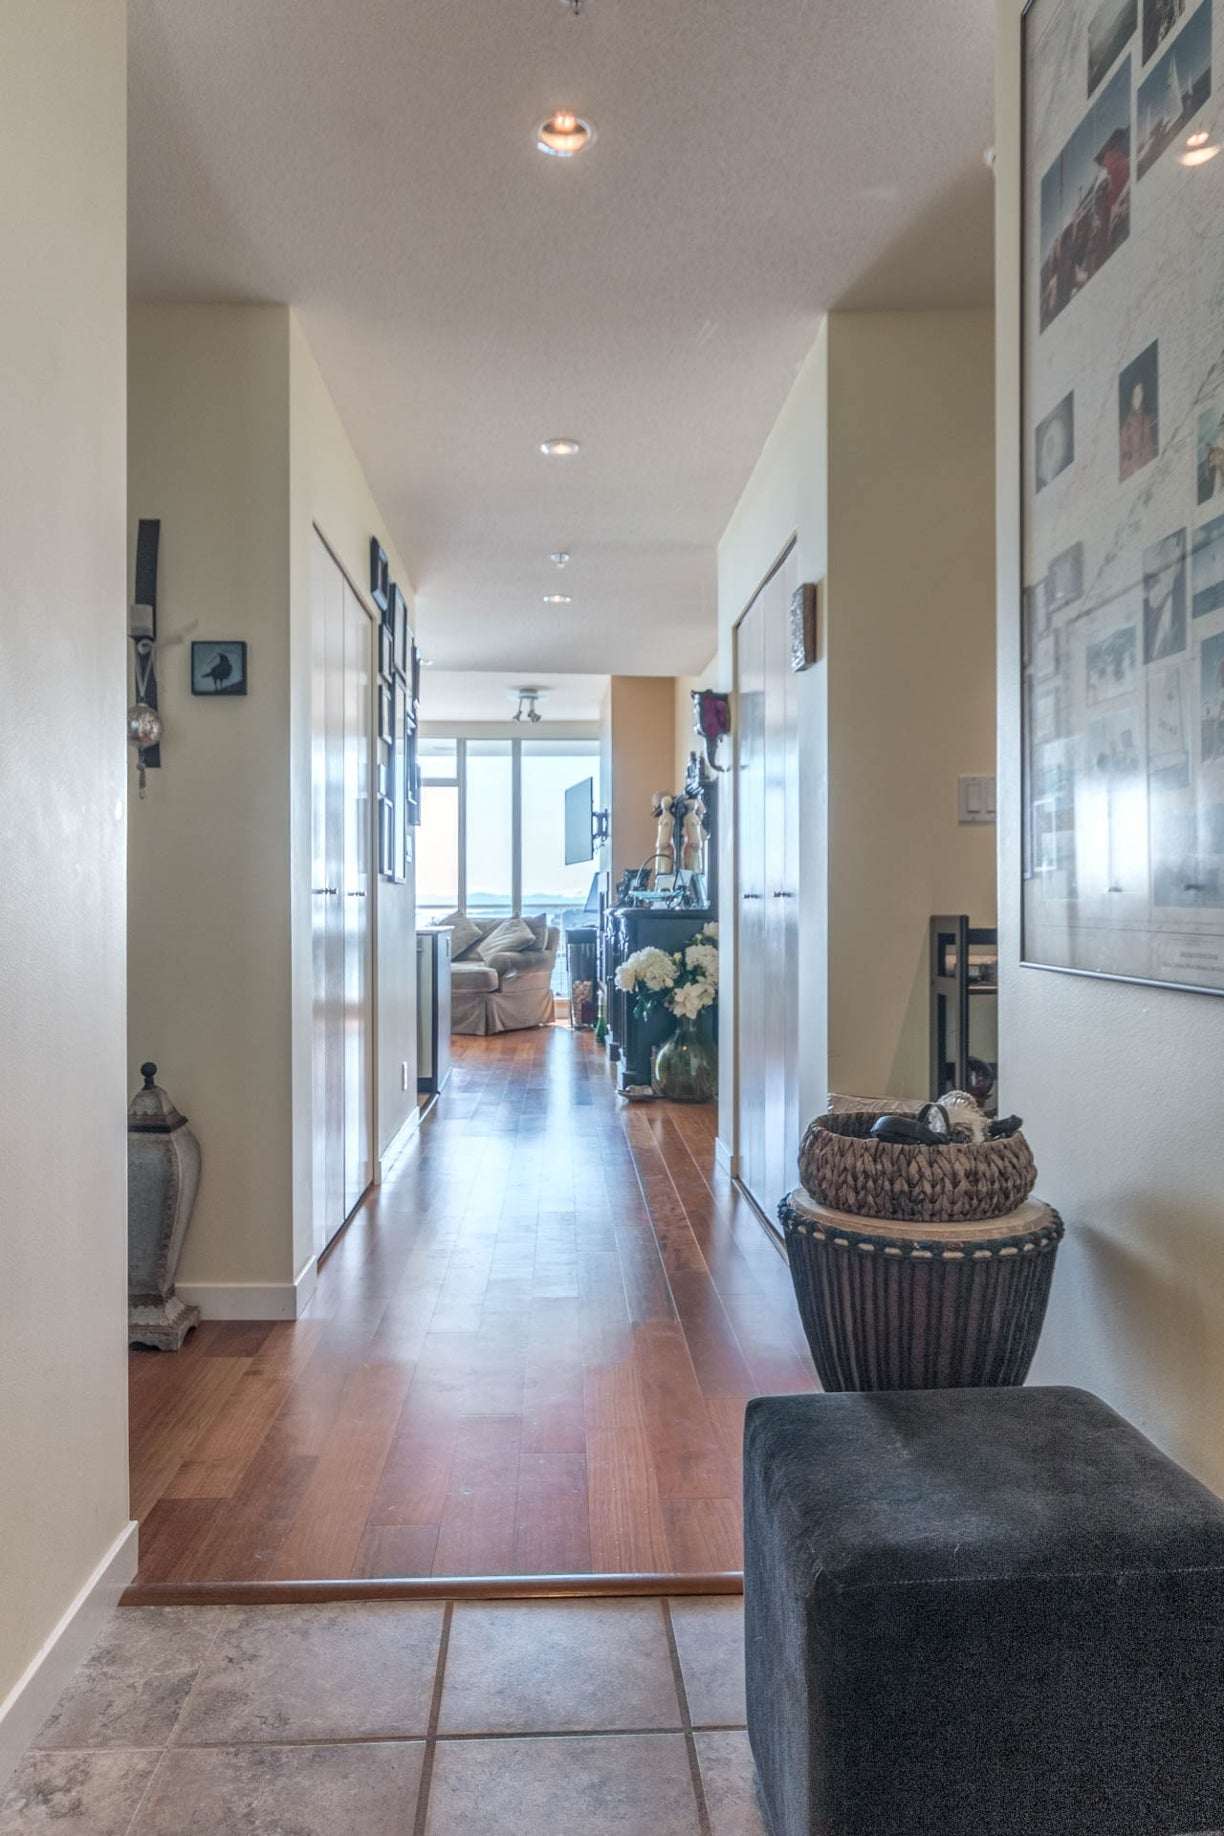 406 68 Songhees Rd - VW Songhees Condo Apartment for sale, 3 Bedrooms (371253) #10